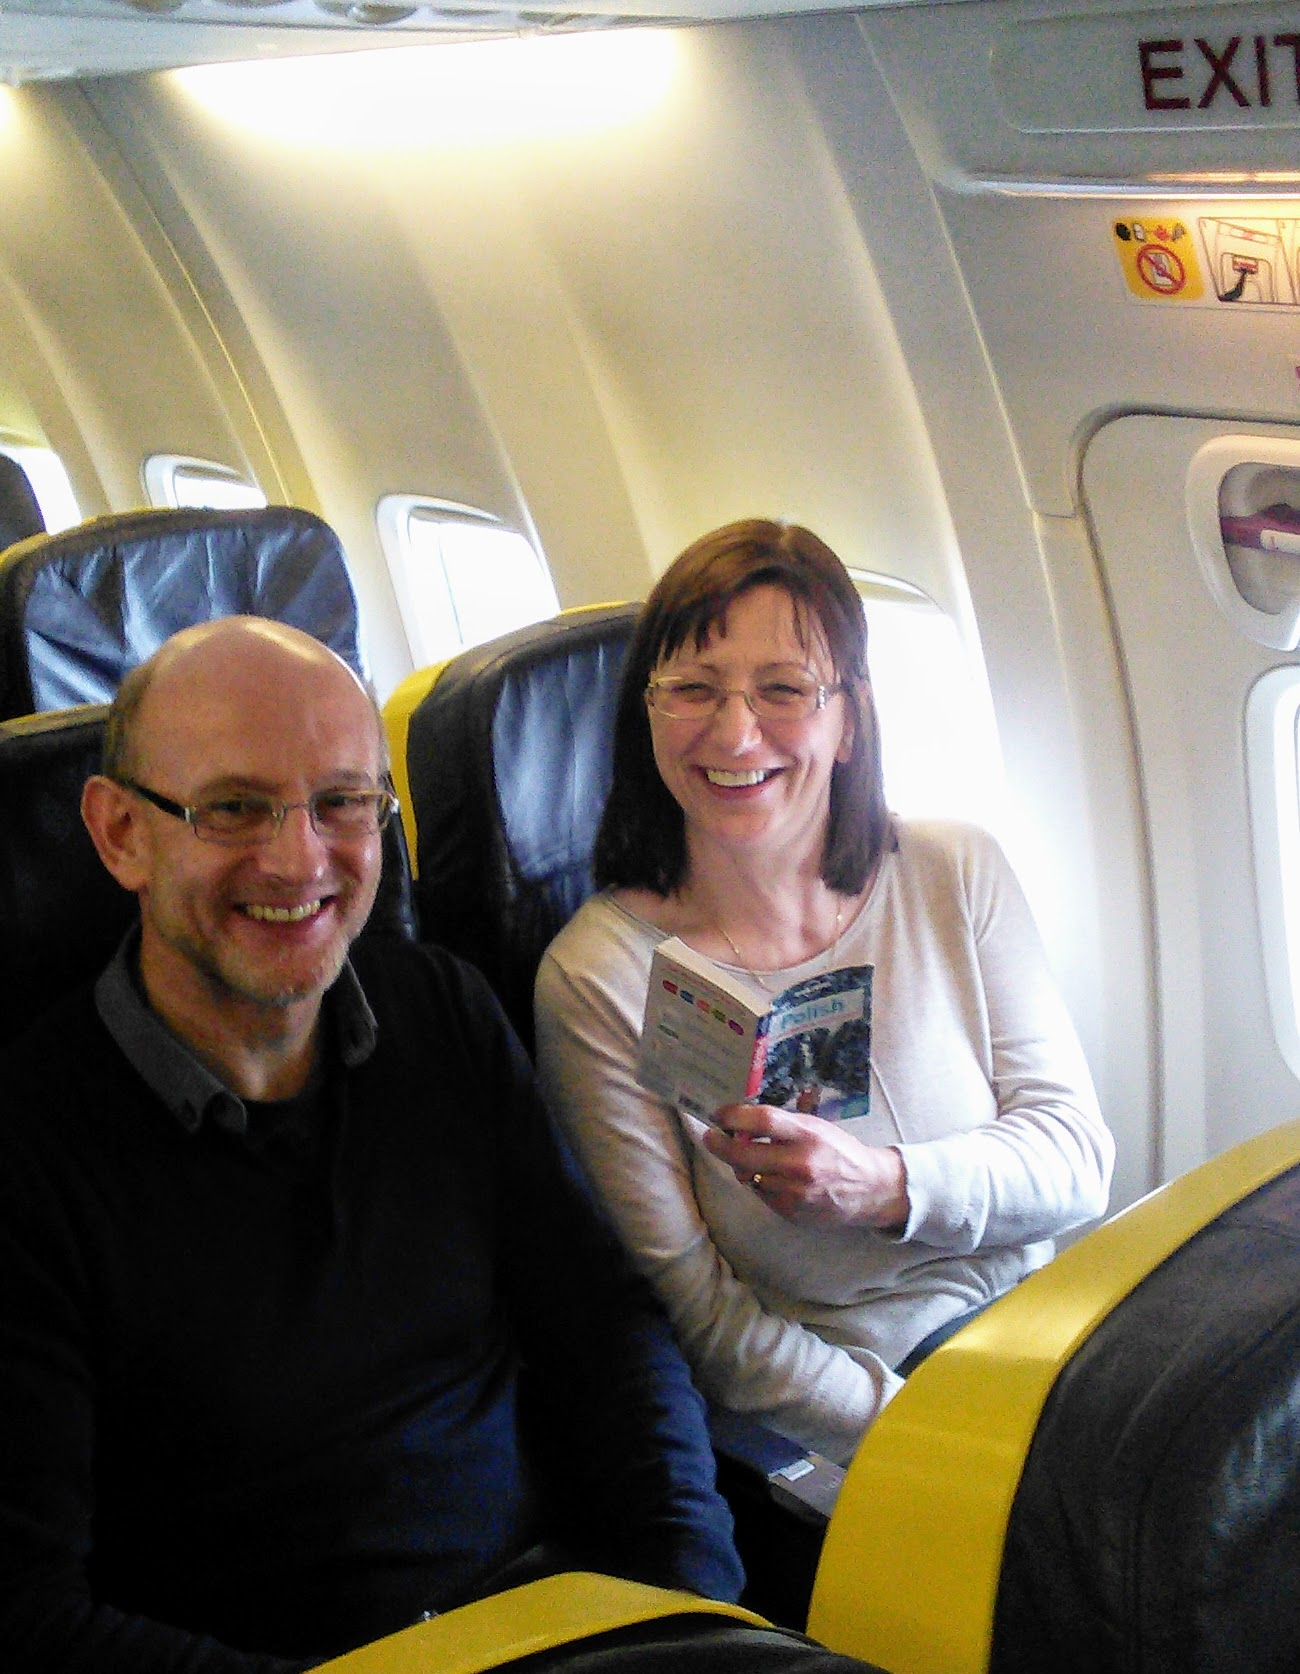 Sitting comfortably on our Ryanair flight! Anna is polishing up on her Polish!